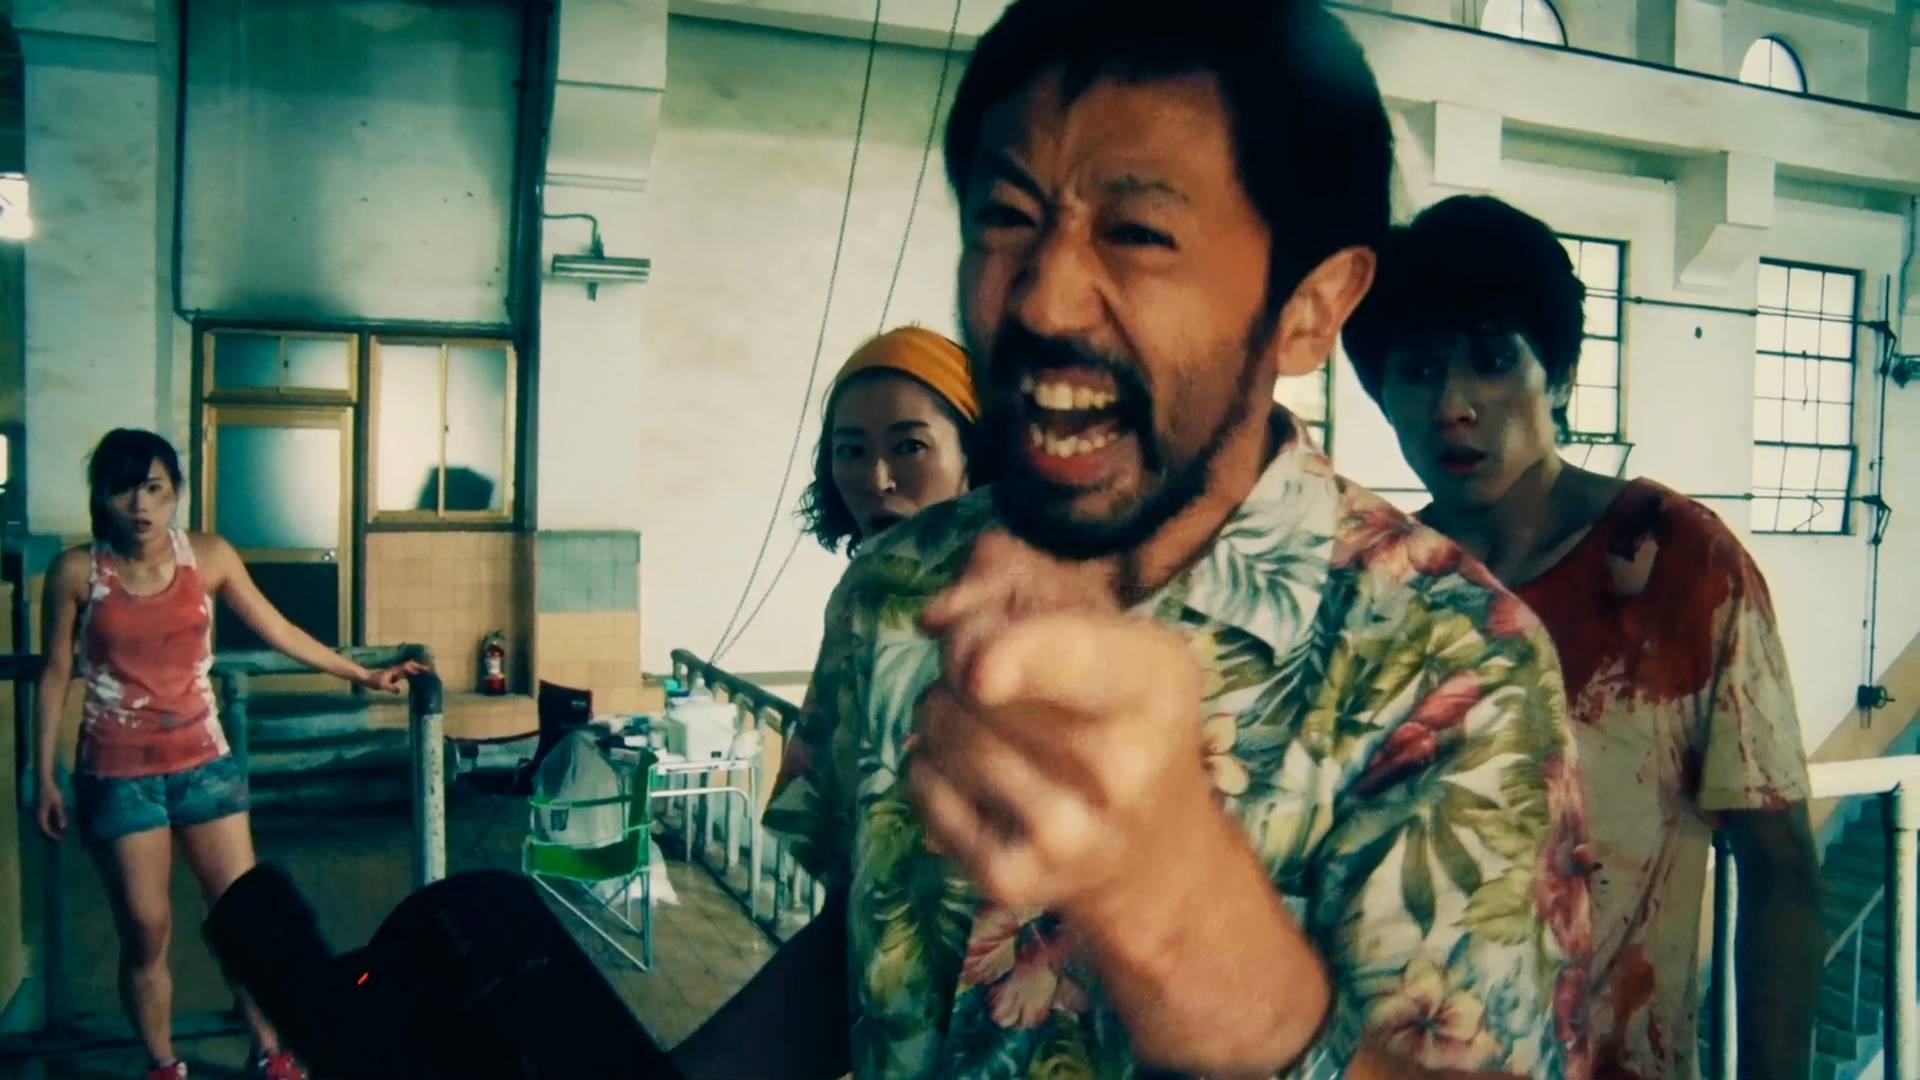 Reality bites: 'One Cut of the Dead,' Shinichiro Ueda's comedy about a zombie movie shoot that turns into a reality show, provides more fun than frights. | © ENBU SEMINAR